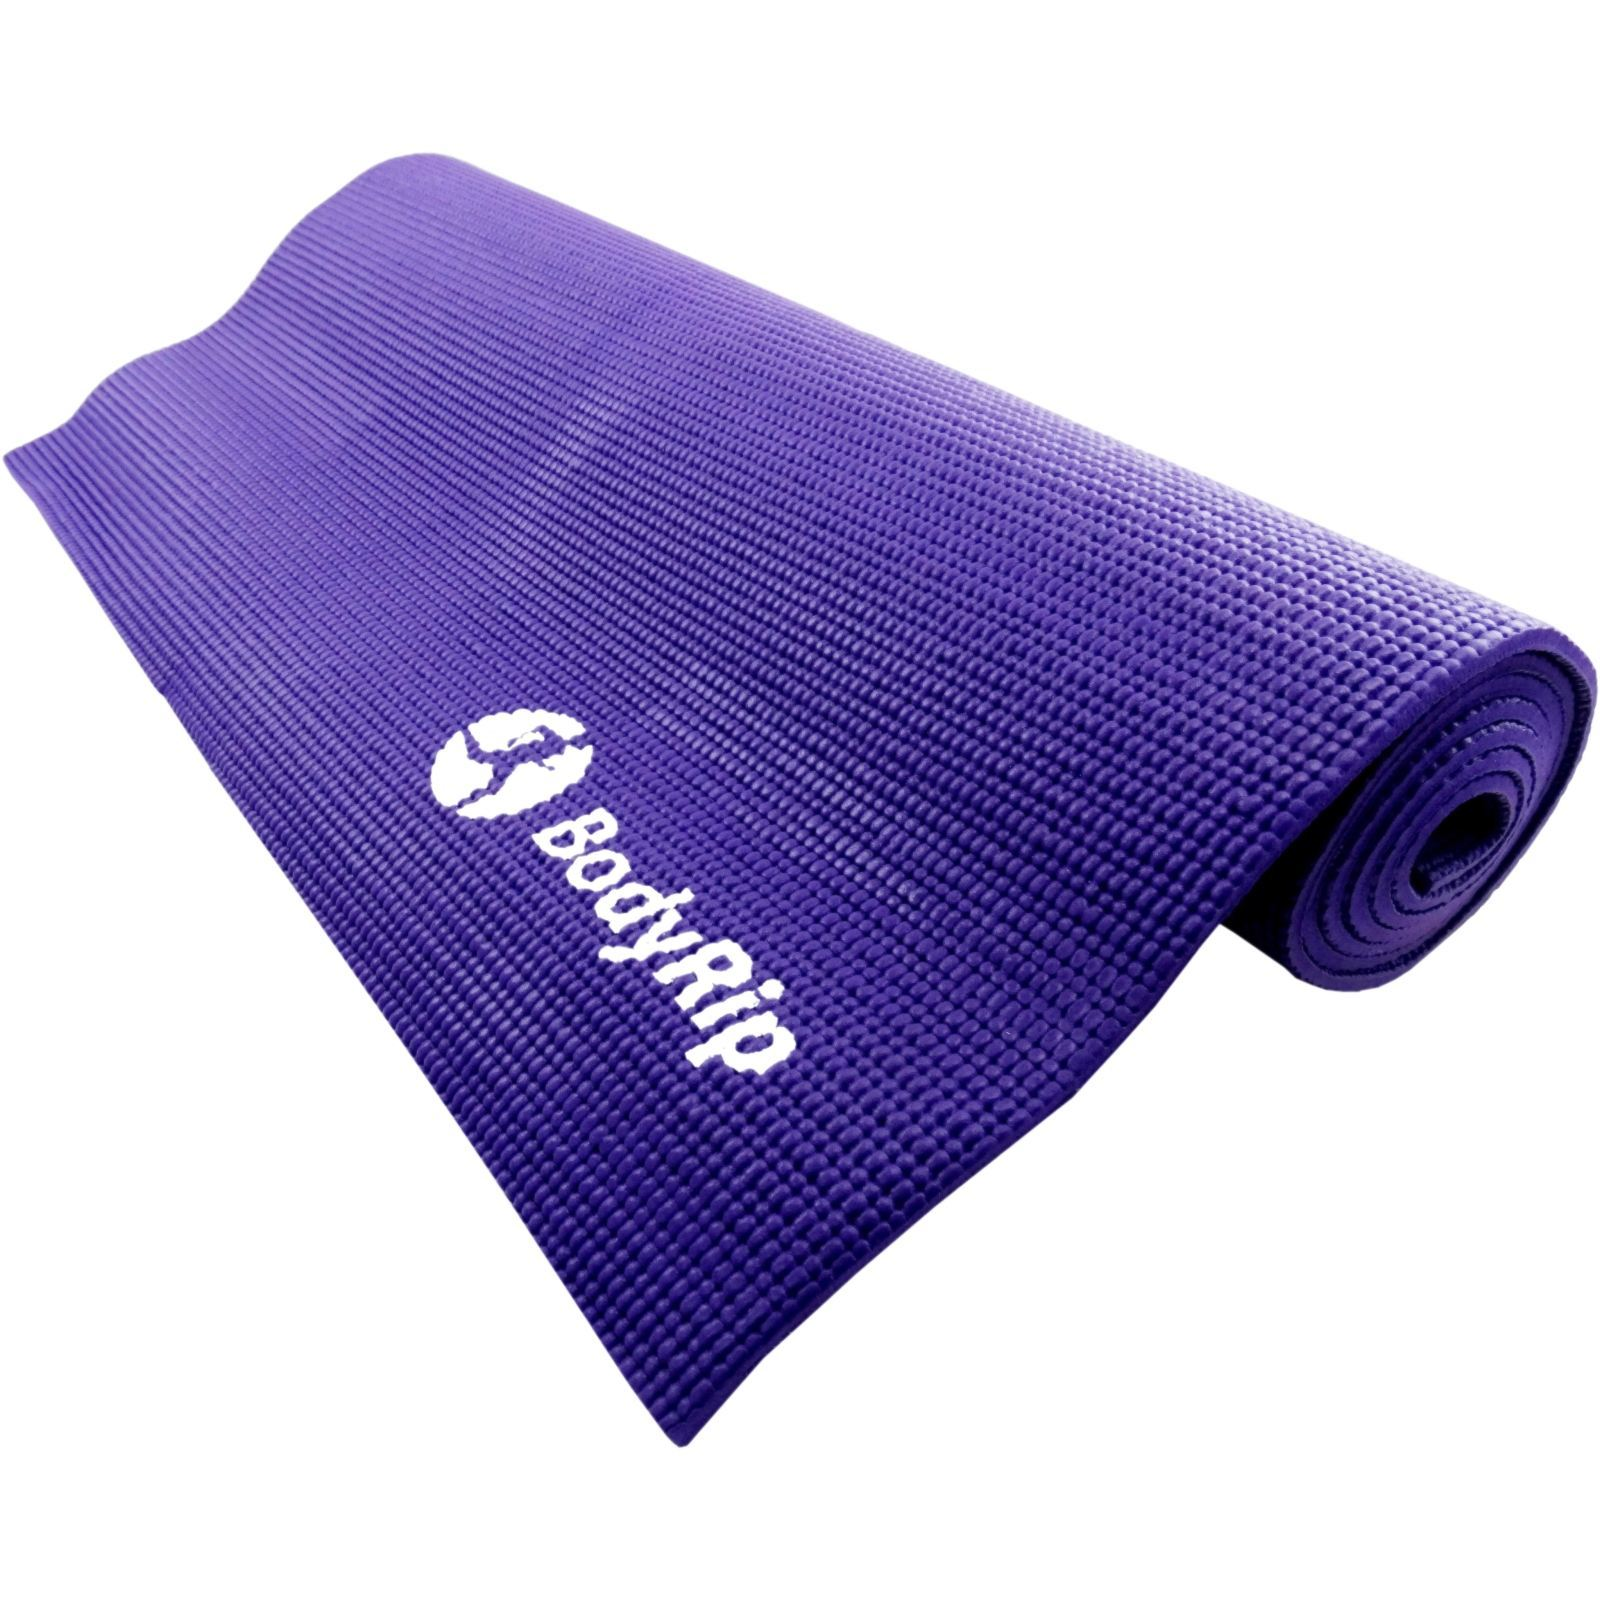 Good Workout Mat: Yoga Pilates Fitness Gymnastic Mats 6mm Workout Gym